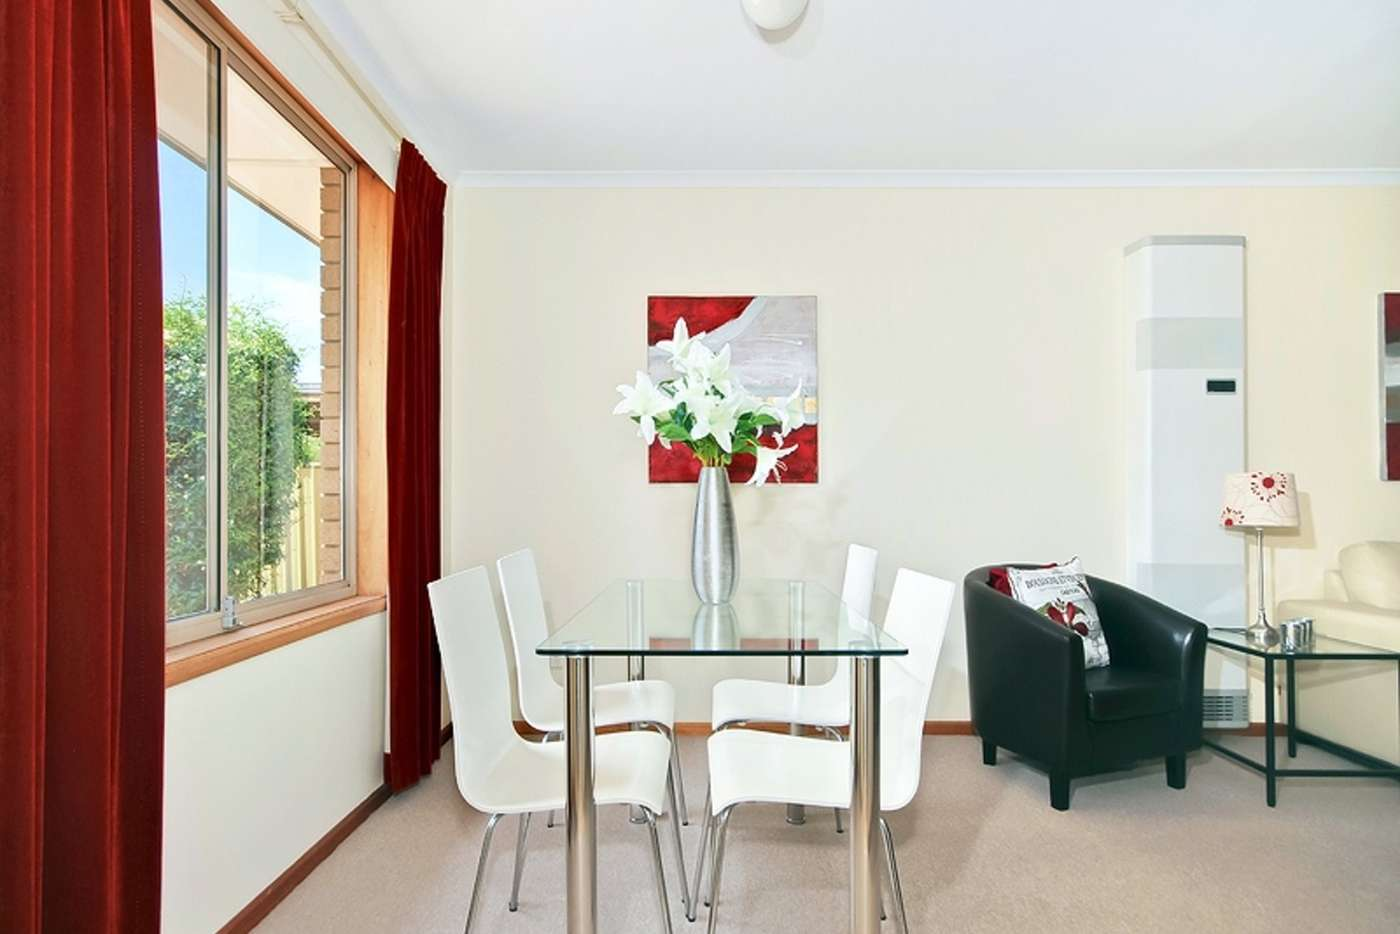 Sixth view of Homely house listing, 28 Saphire Road, Morphett Vale SA 5162